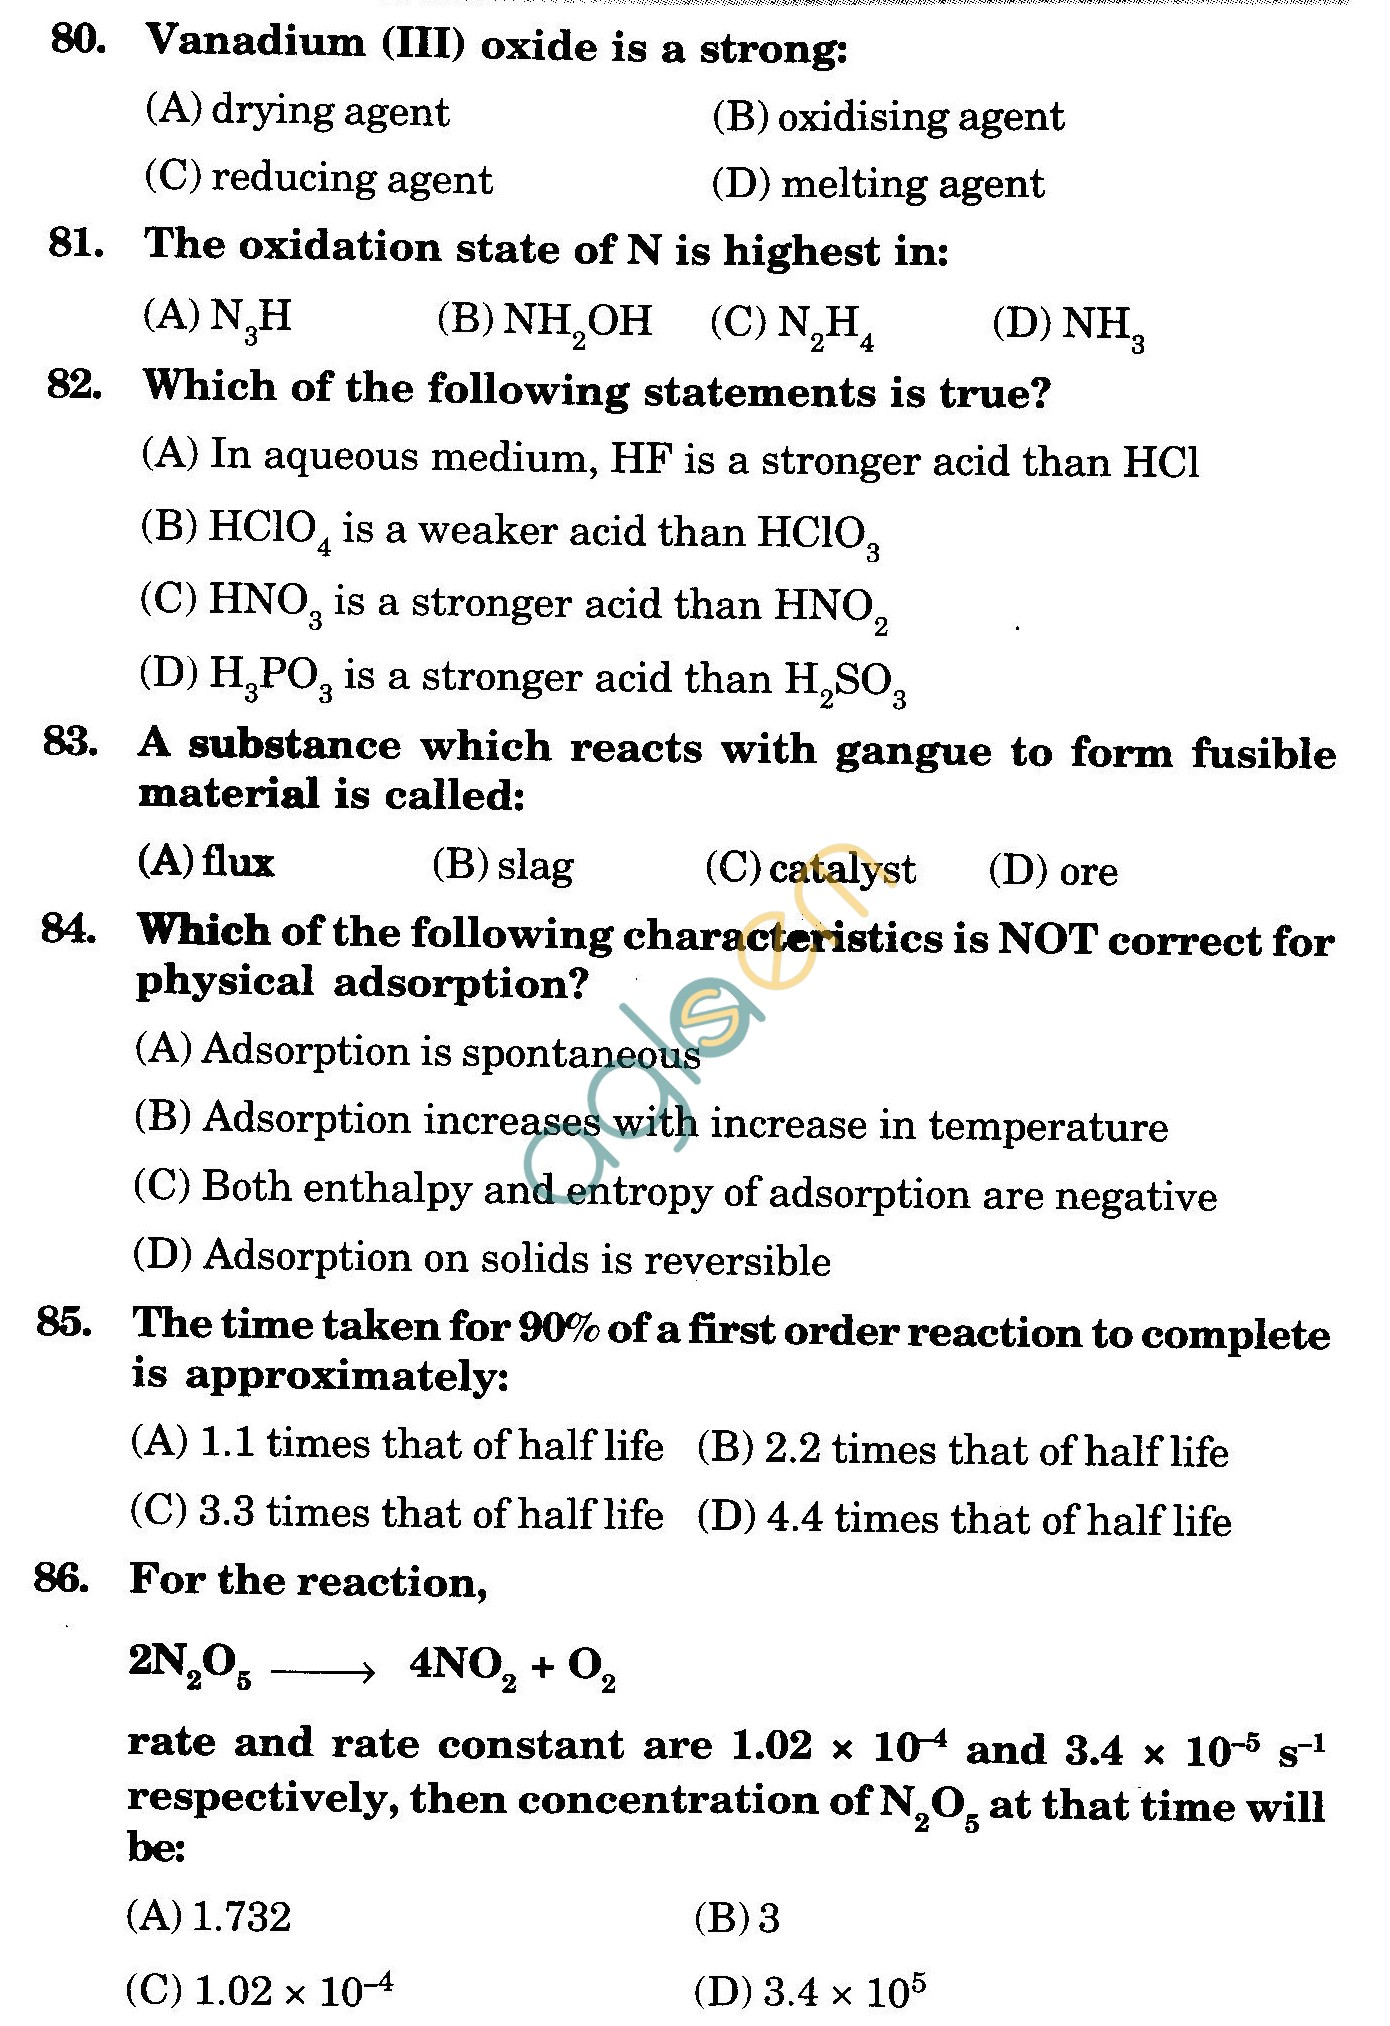 NSTSE 2009 Class XII PCB Question Paper with Answers - Chemistry